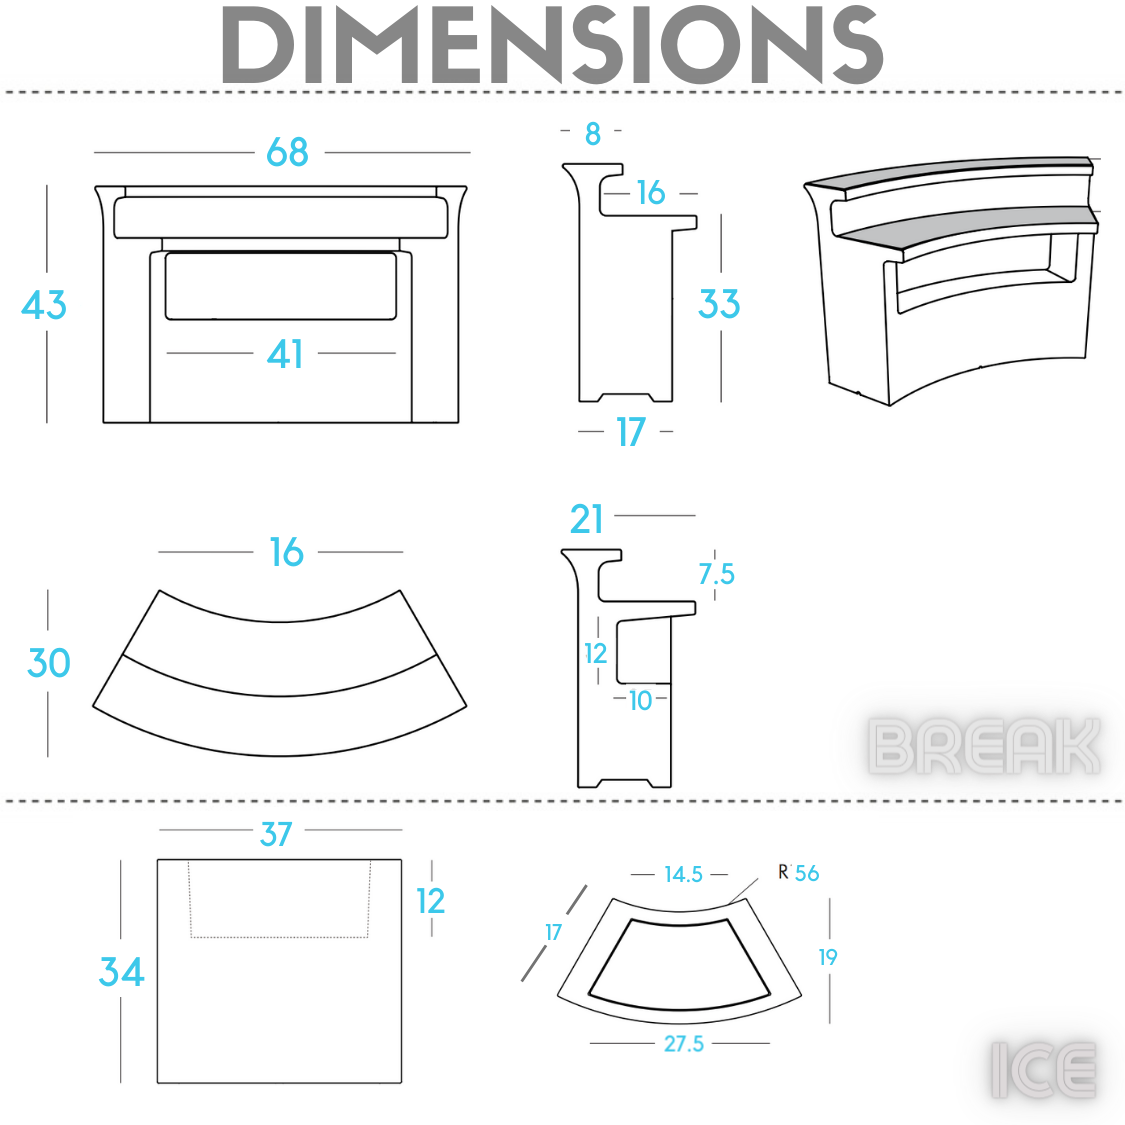 break bar from Slide Design-dimensions